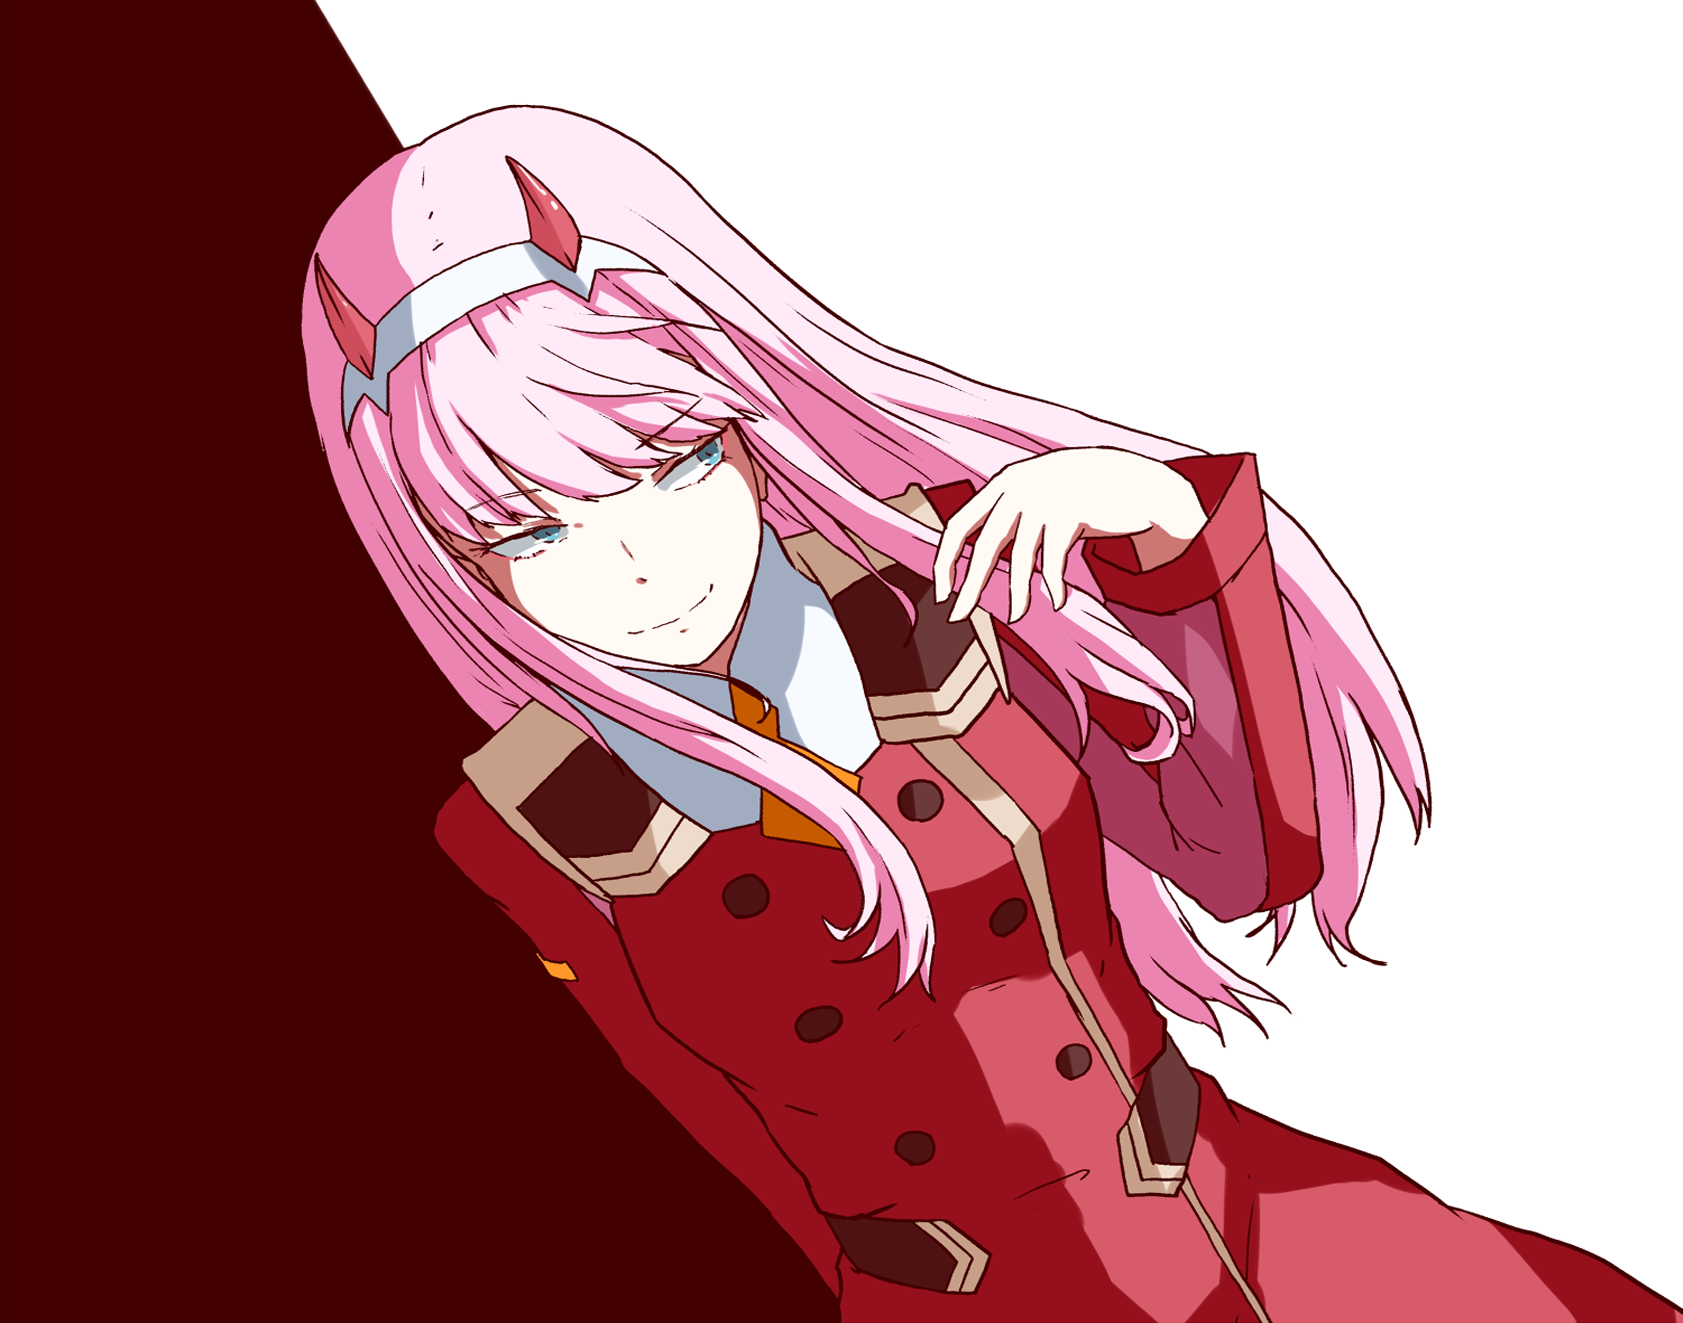 Zero Two Wallpaper and Background Image   1683x1323   ID ...